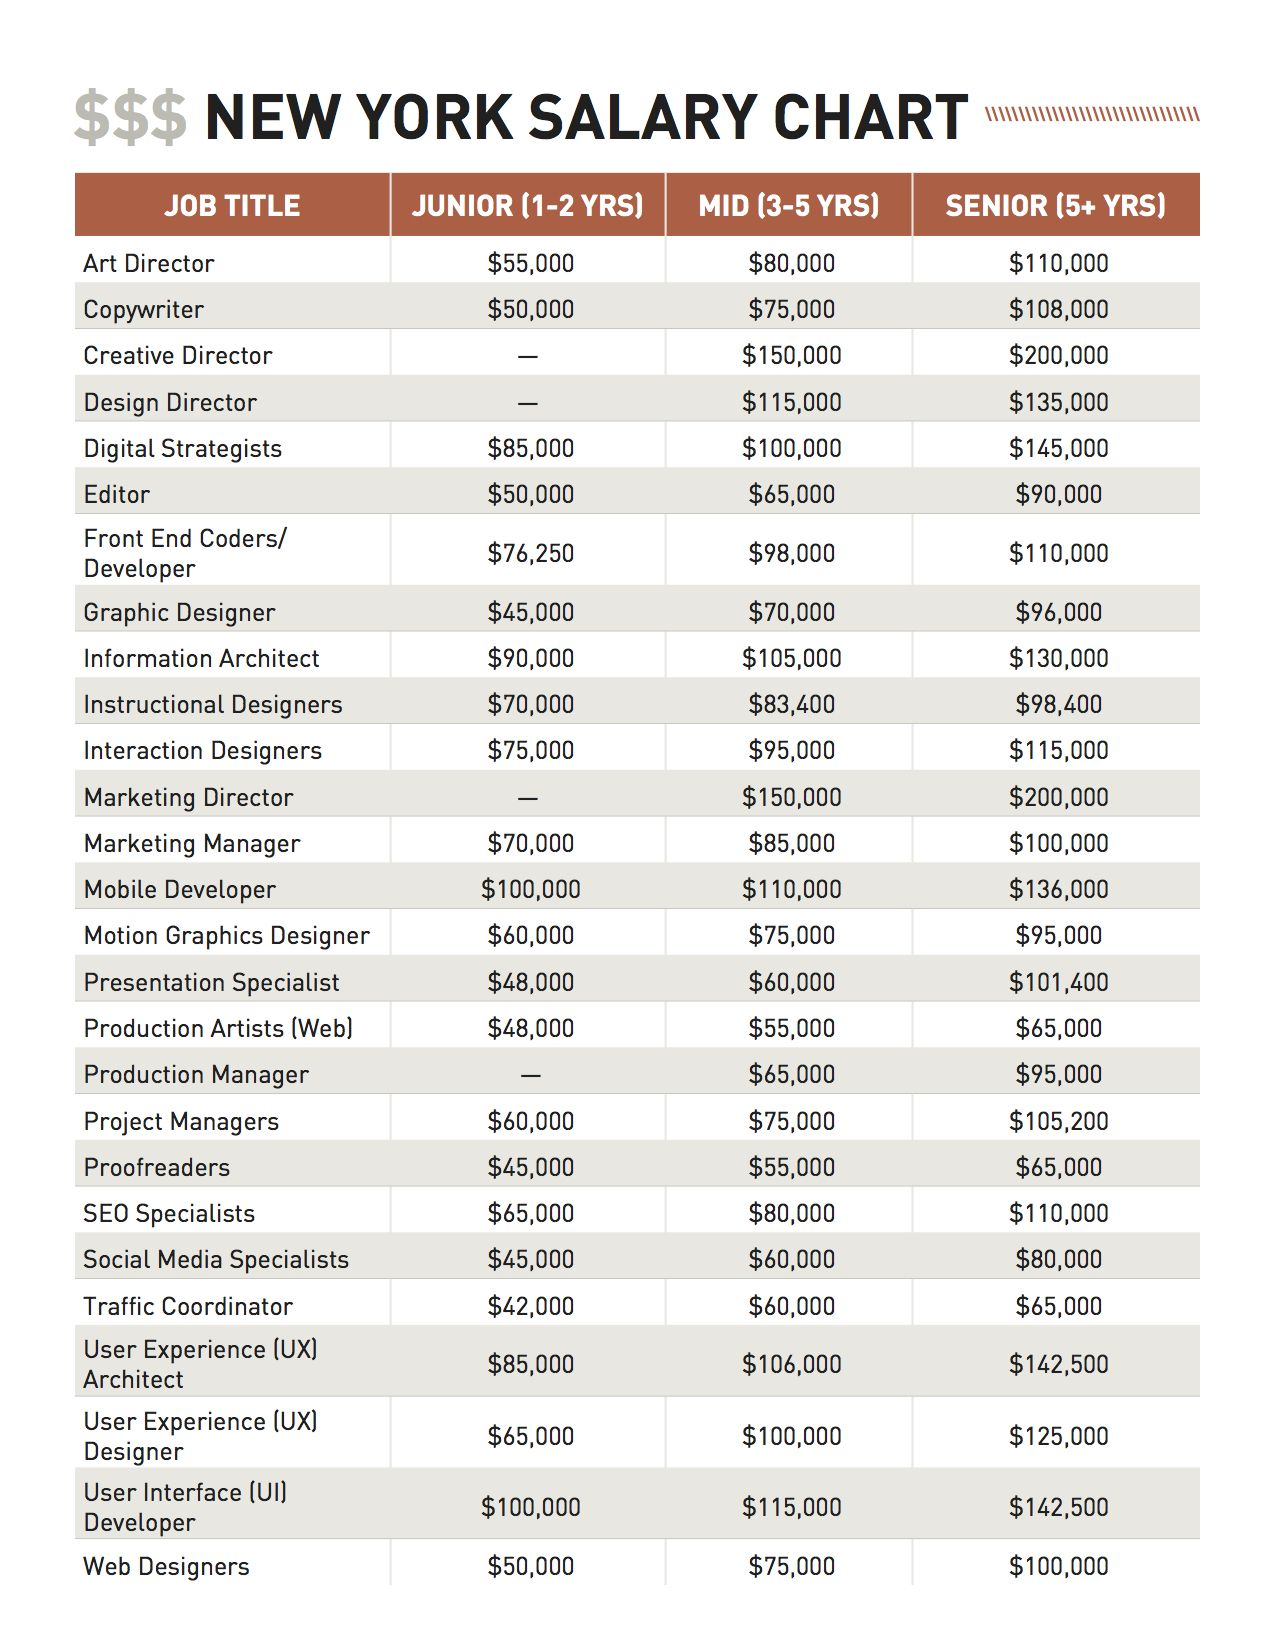 New York Salary Guide Chart (Click to Download the full